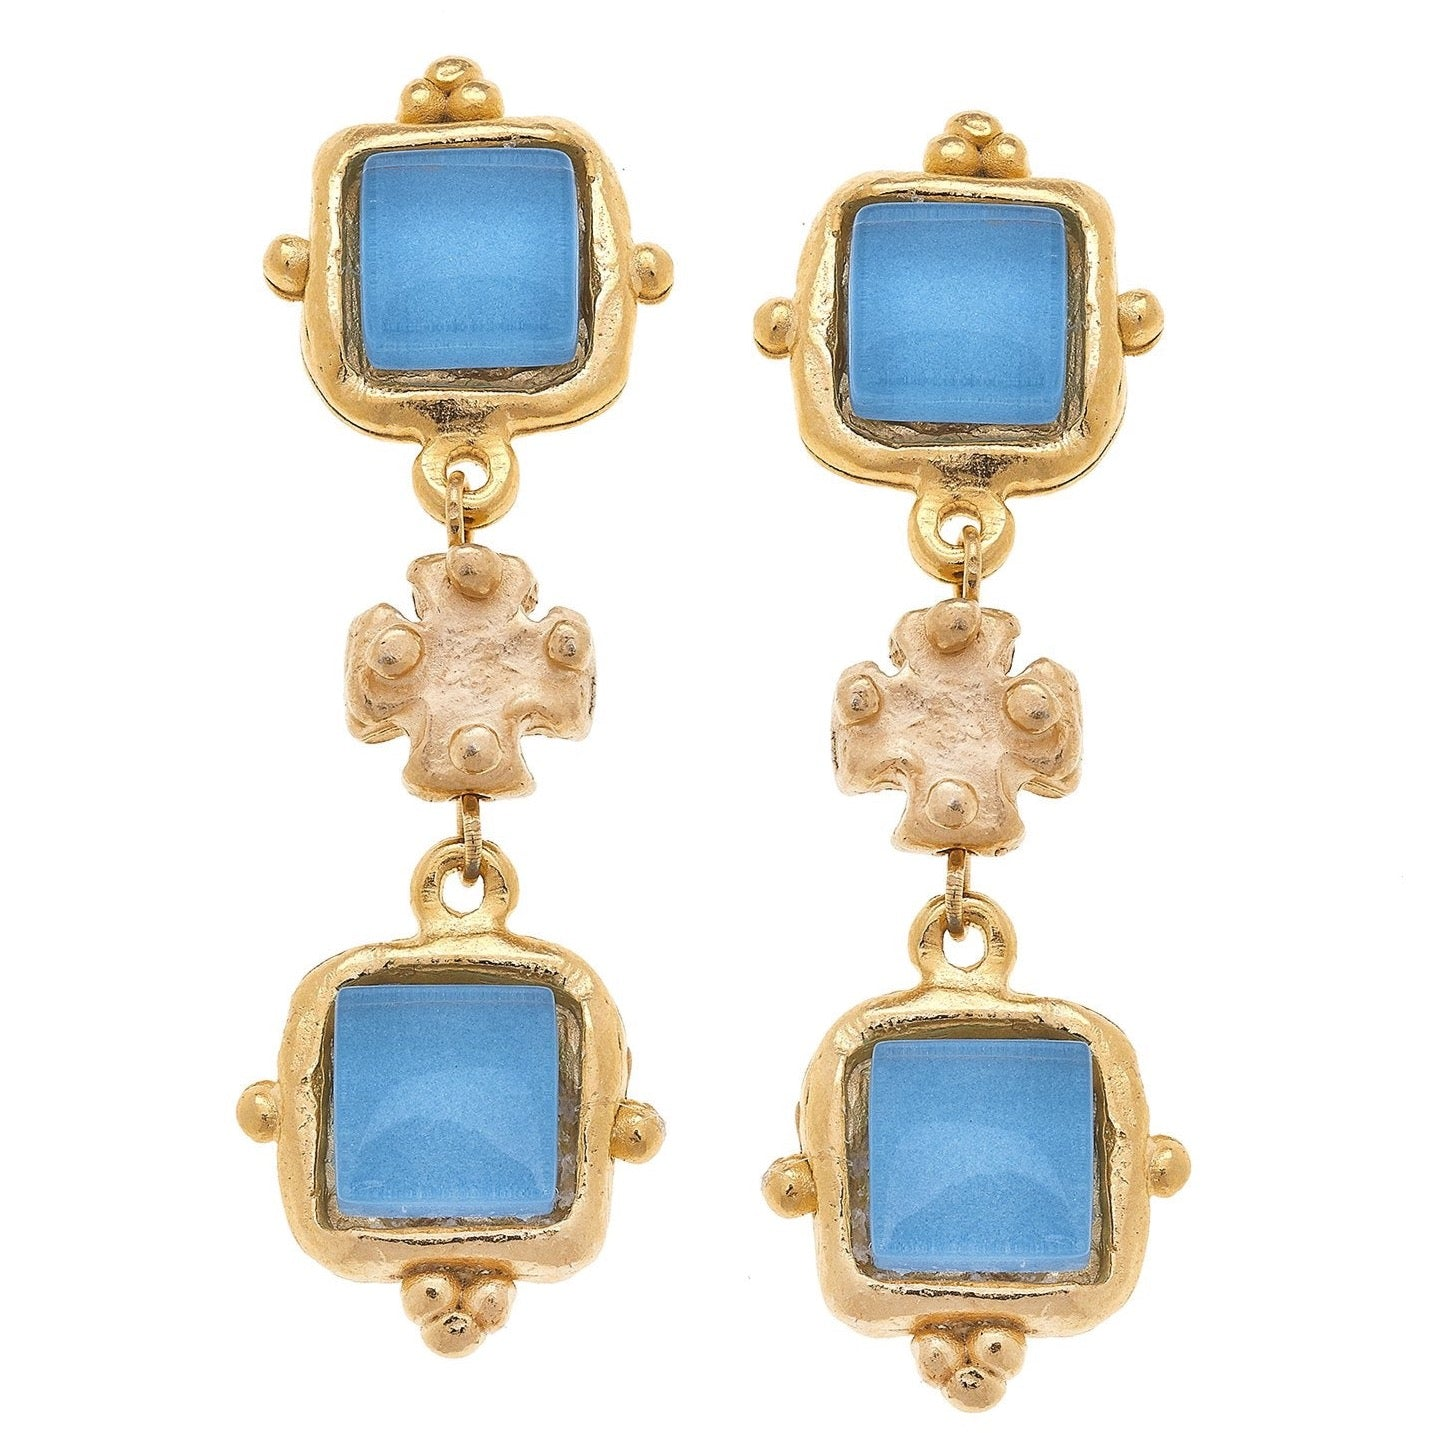 Susan Shaw Charlotte Deux Tier Earrings in Parisian Blue